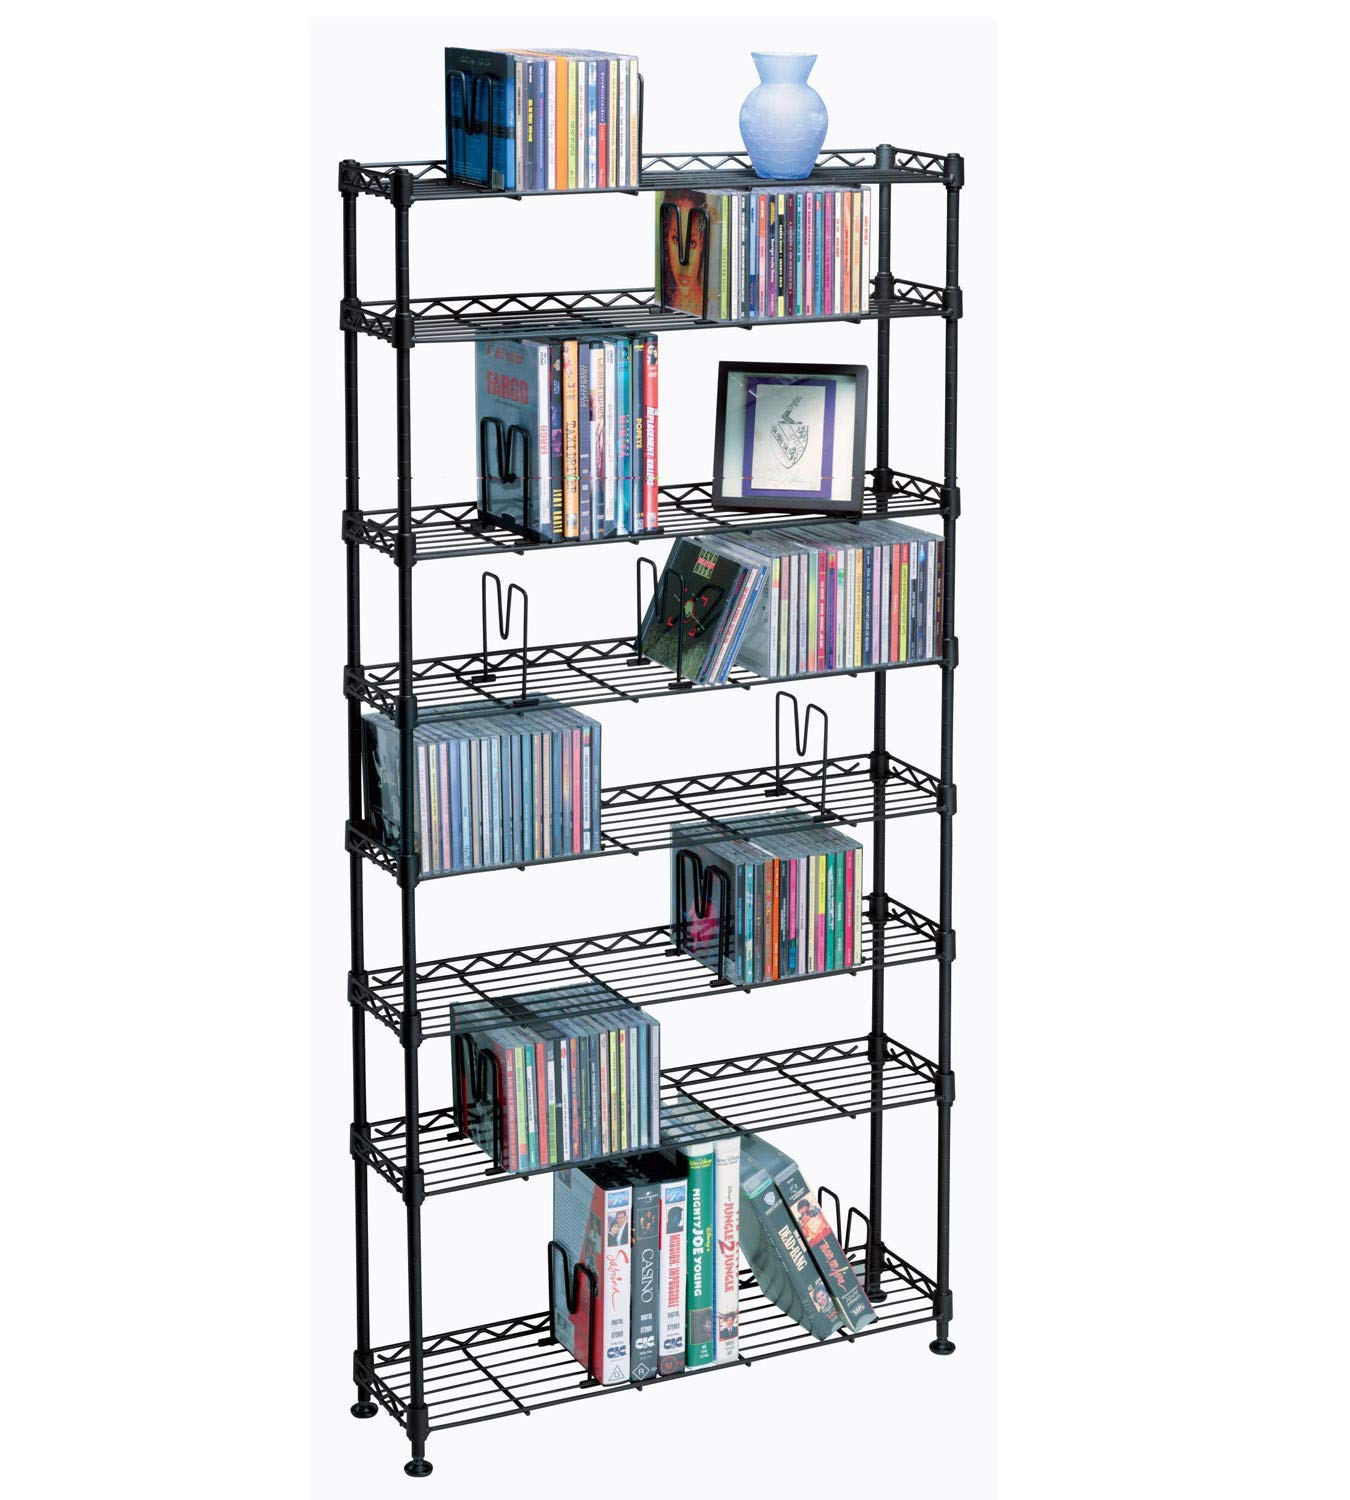 Atlantic Maxsteel 8 Tier Shelving - Heavy Gauge Steel Wire Shelving for 440 CD/228 DVD/264 BluRay/Games Media in Black - 3020 (Renewed) by Atlantic